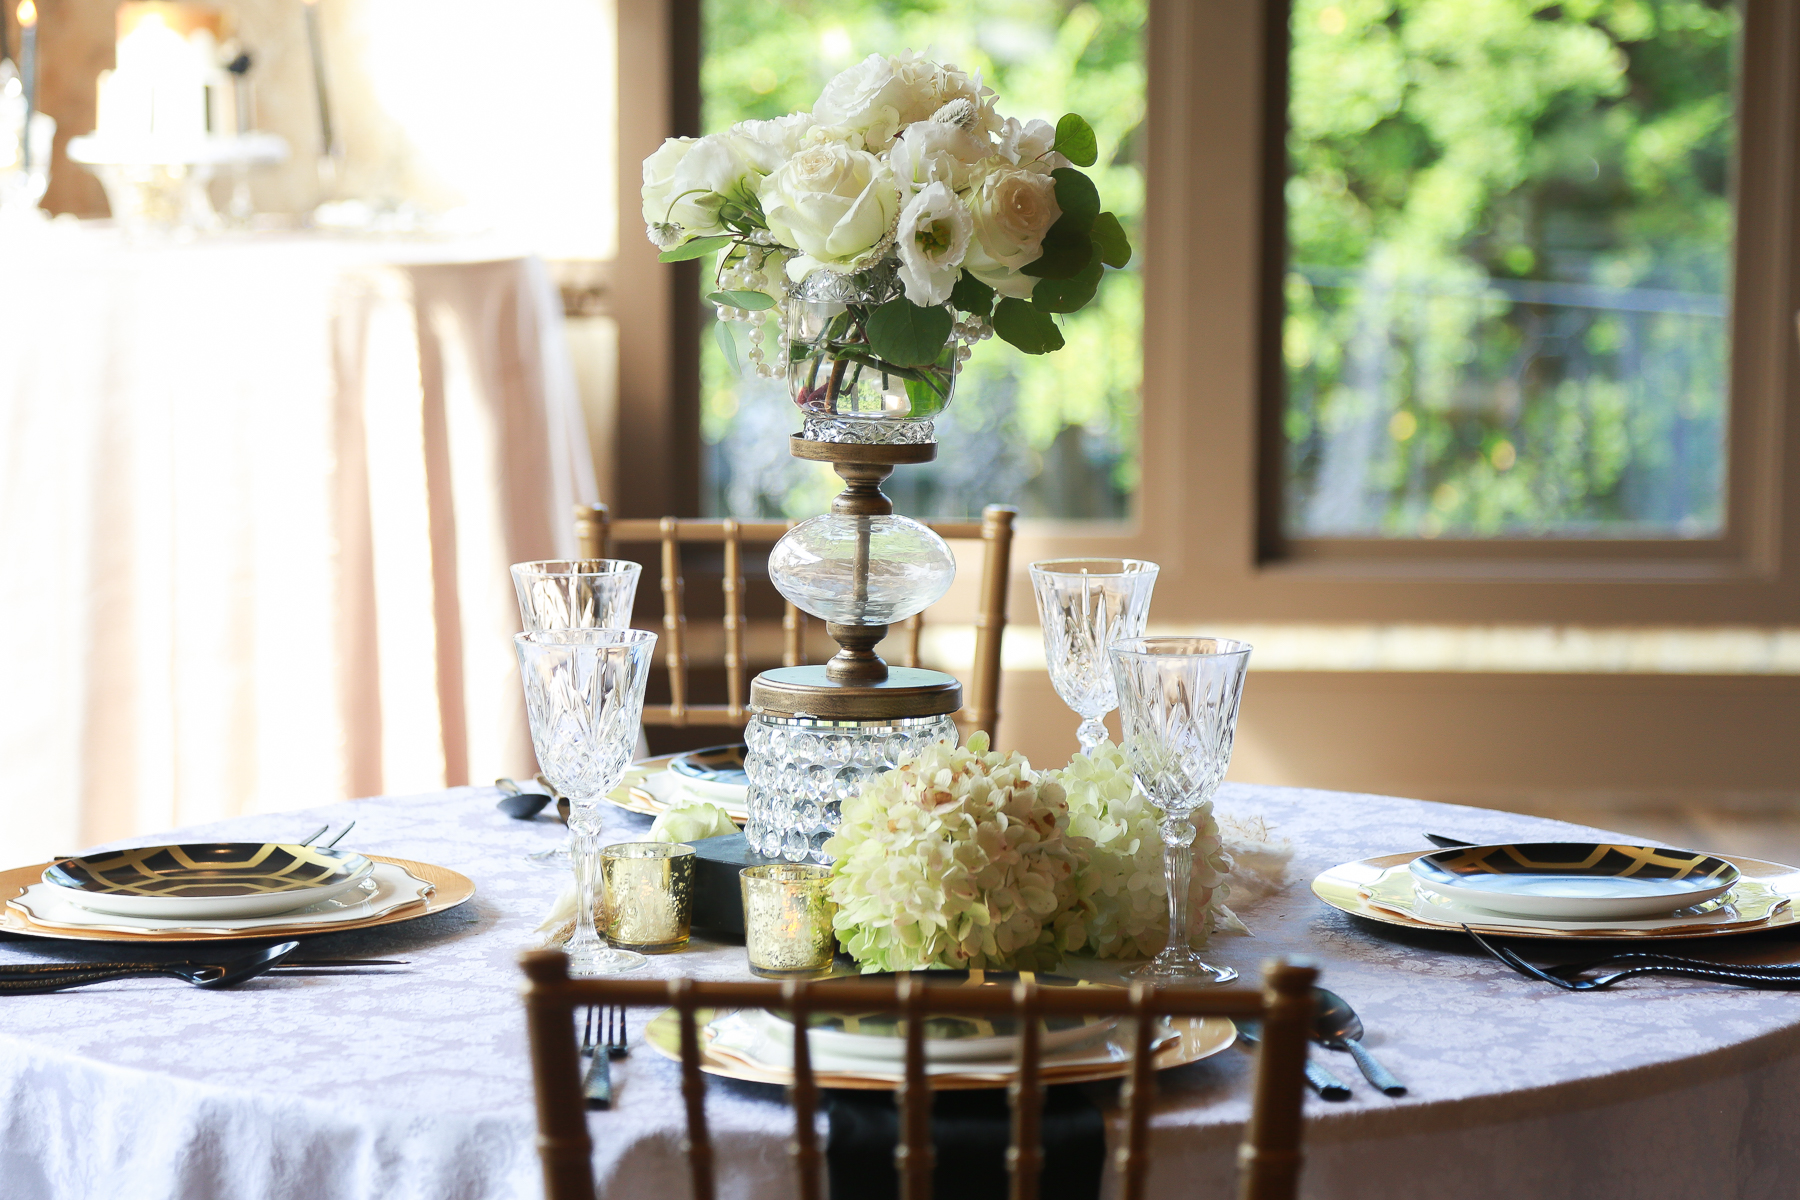 A table with flowers and vases